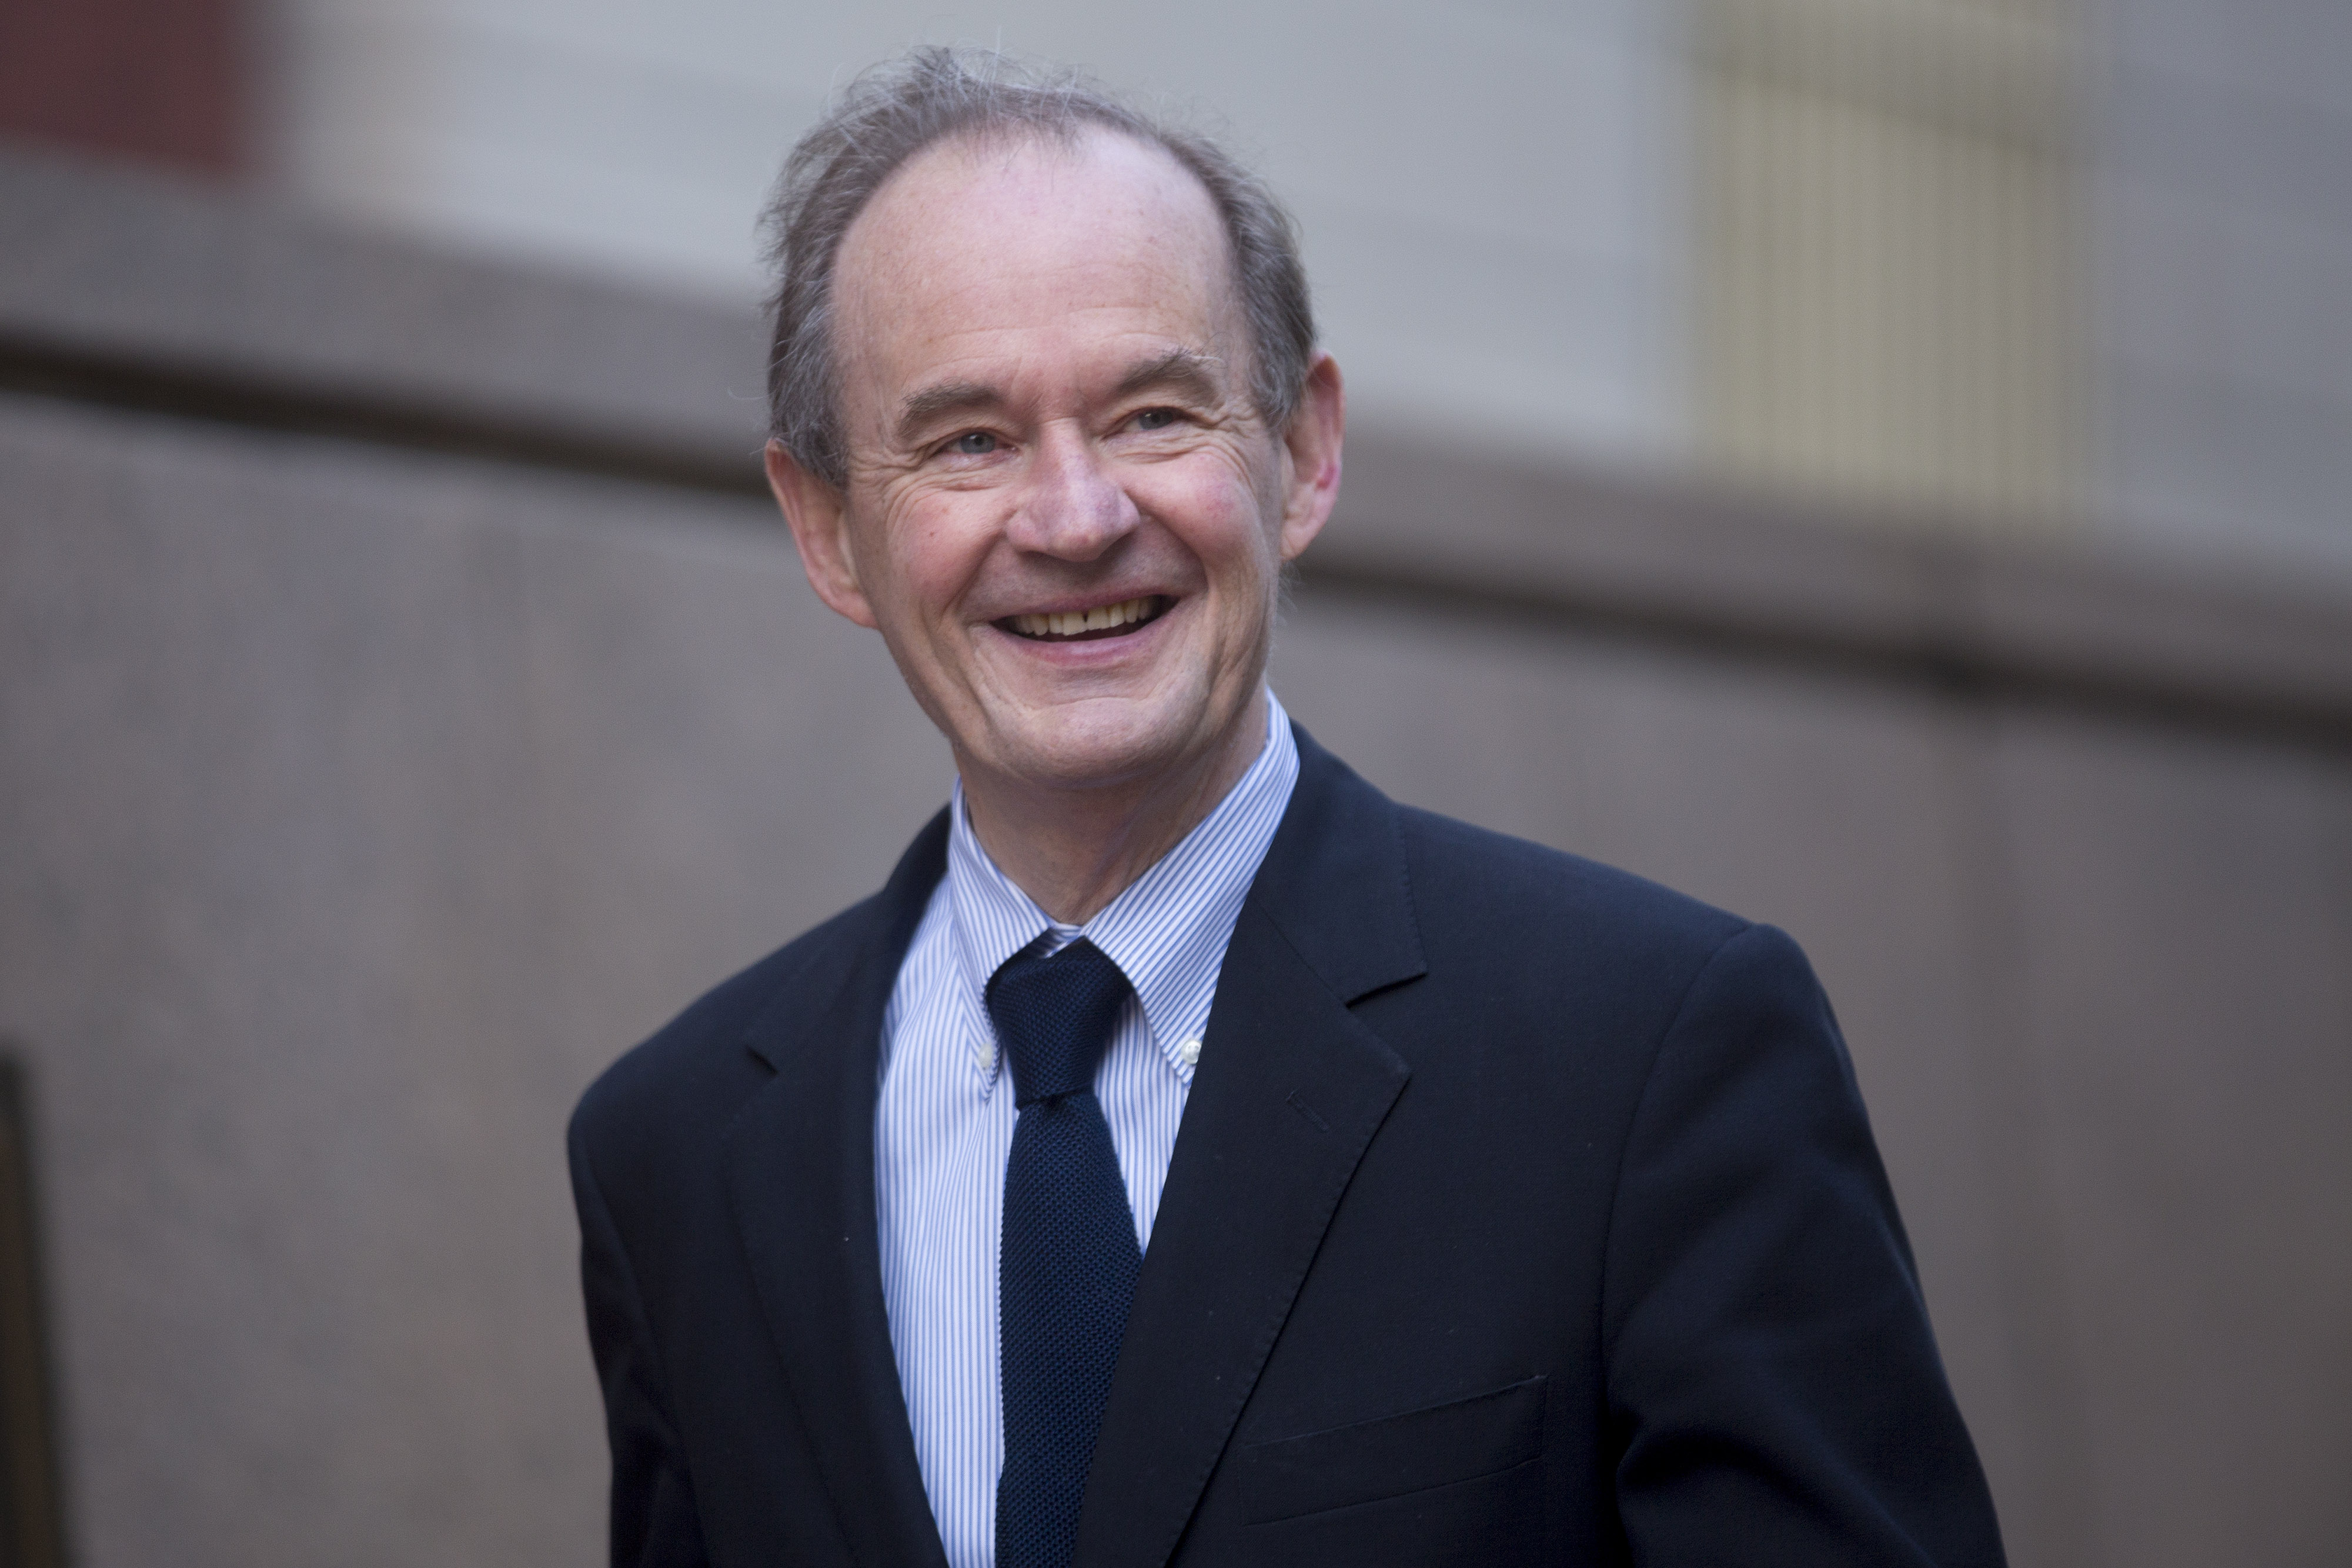 David Boies arrives to the U.S. Court of Federal Claims in Washington, DC on Oct. 7, 2014.